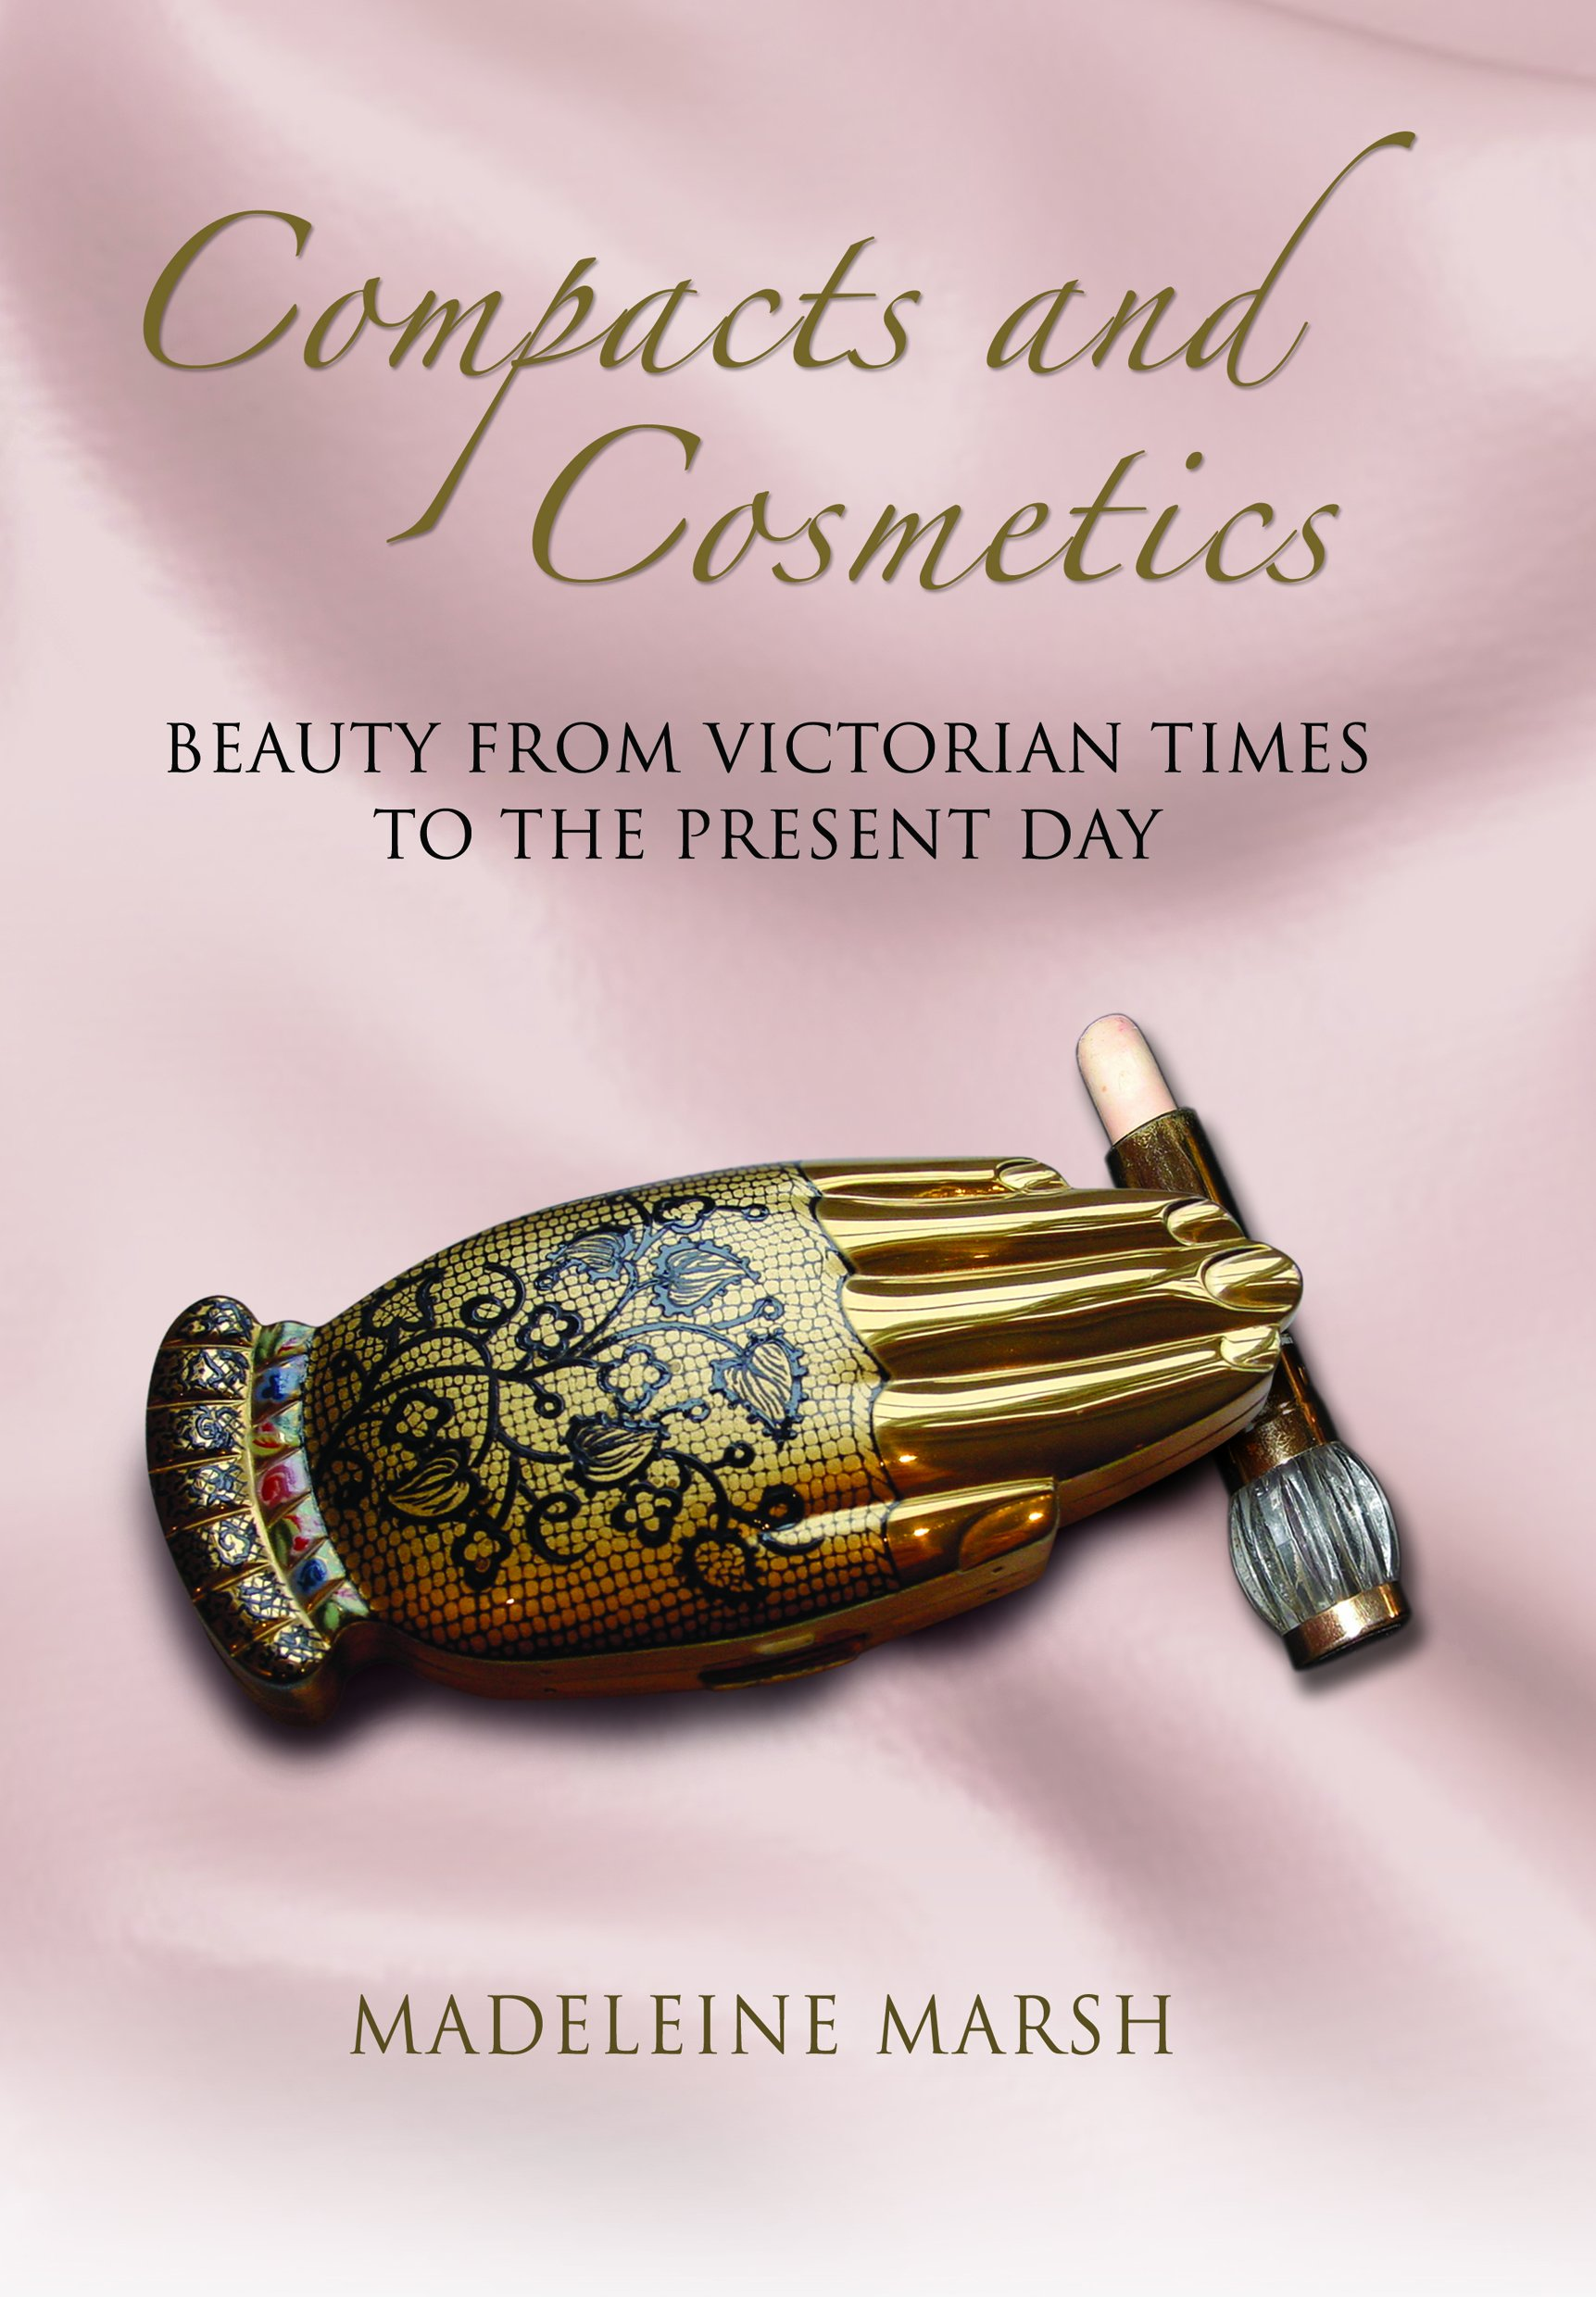 Compacts and Cosmetics: Beauty From Victorian Times to the Present Day (Women With Style) PDF